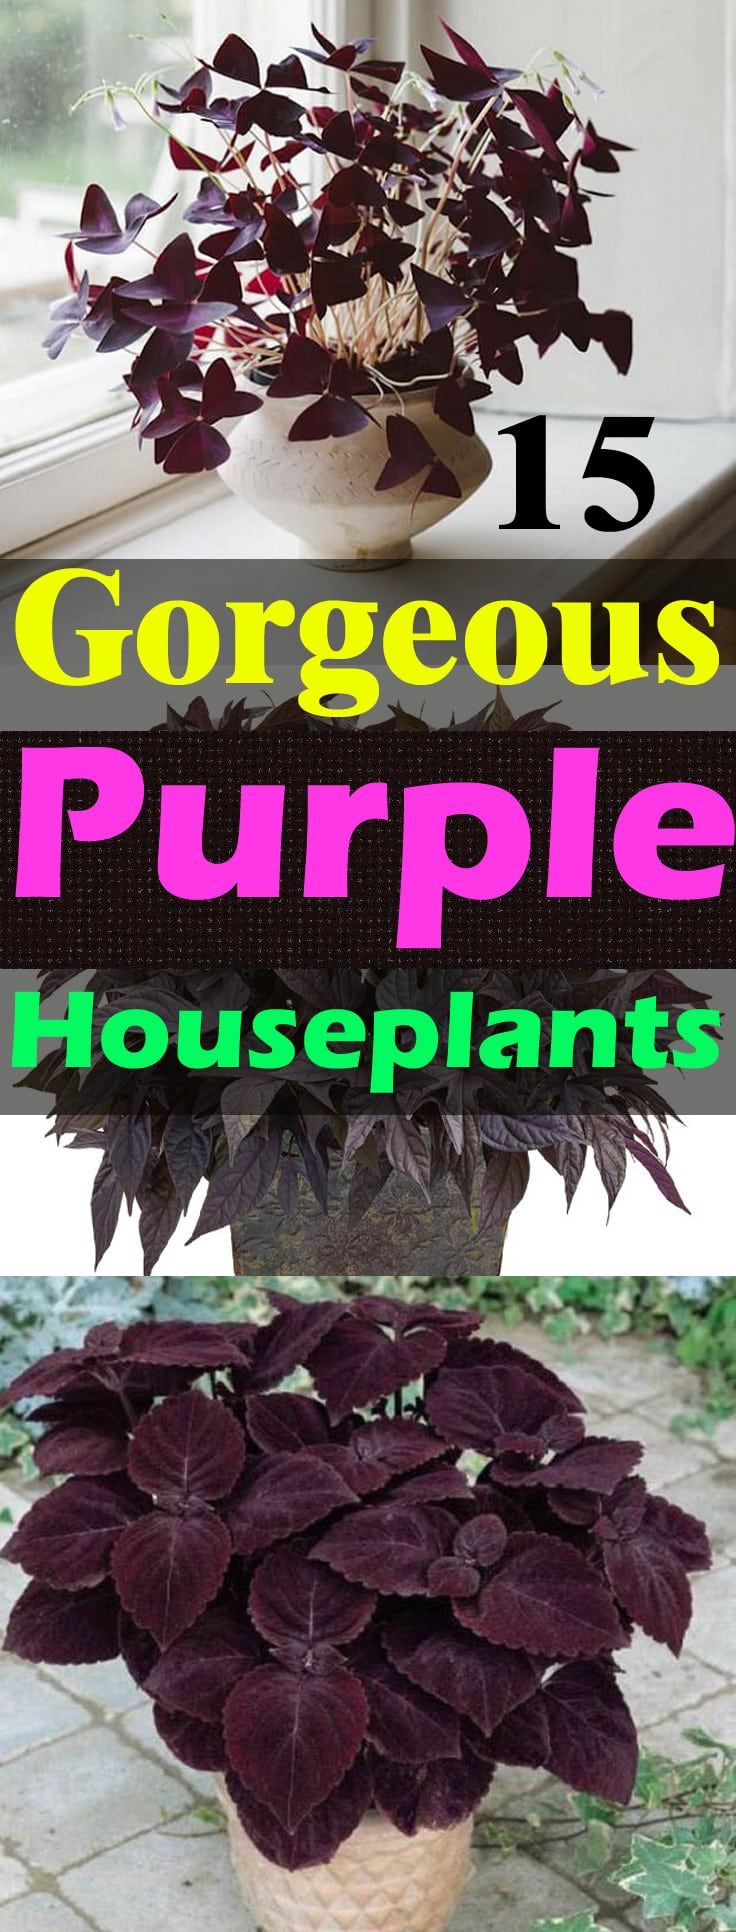 Love the color purple? Then grow these 15 GORGEOUS purple houseplants known for their colorful foliage and warm texture!